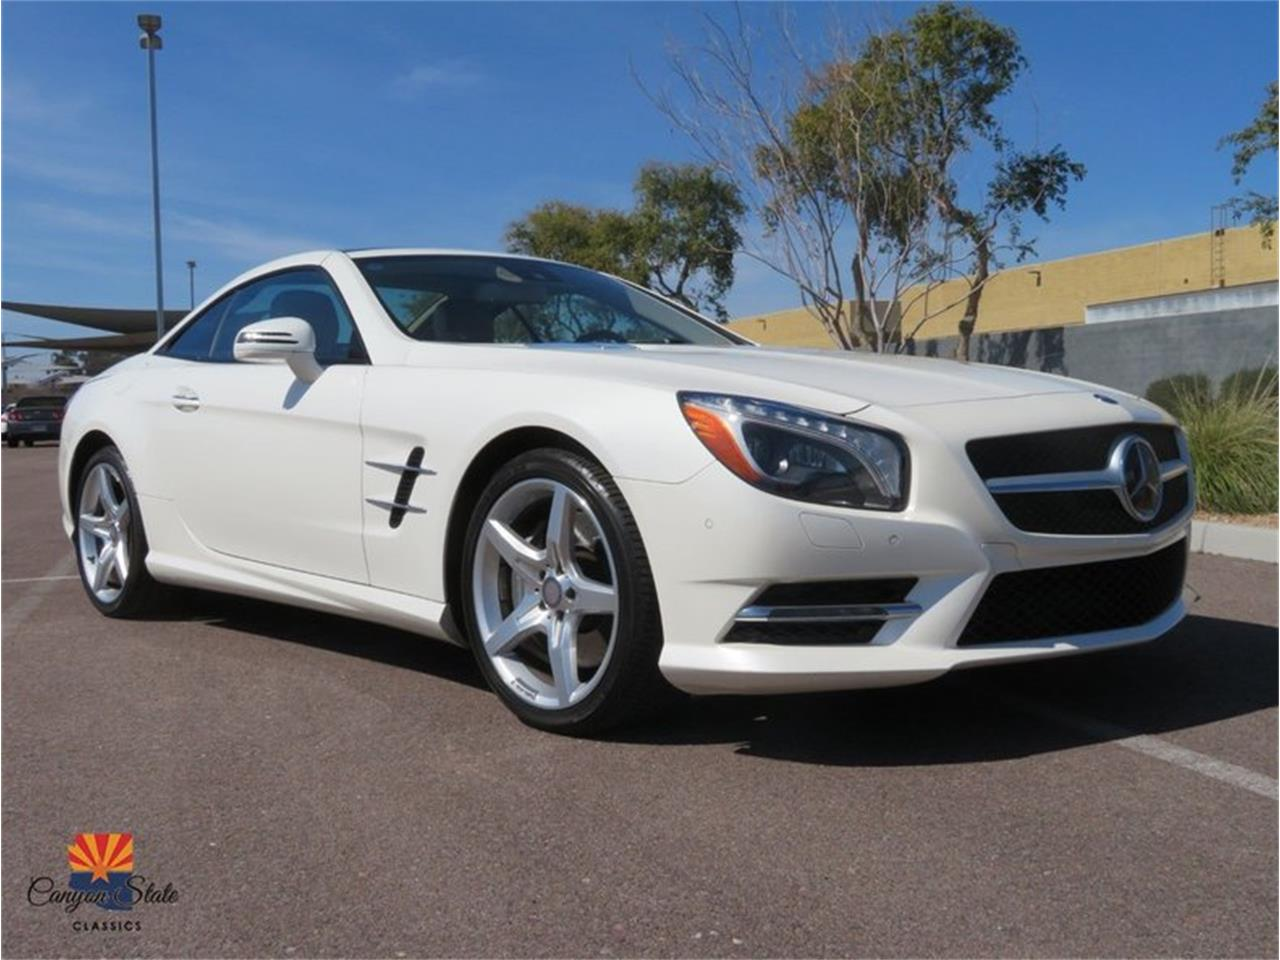 2013 Mercedes-Benz SL-Class for sale in Tempe, AZ – photo 68